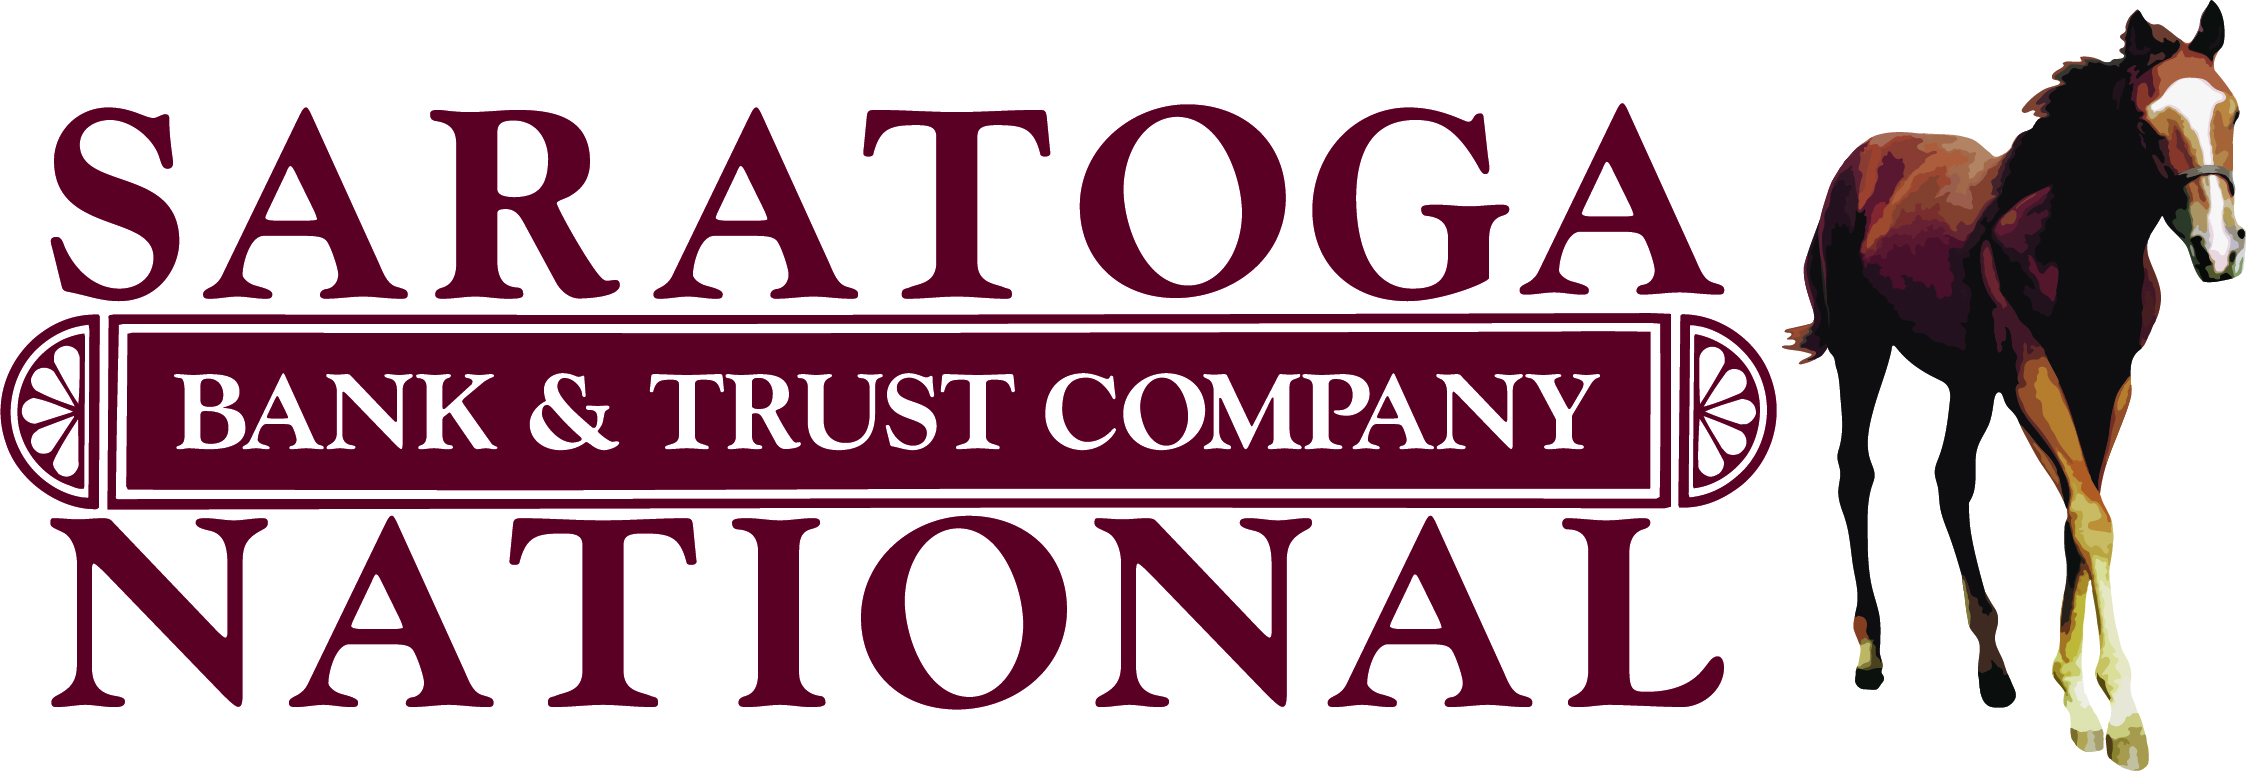 Saratoga National Bank & Trust Company Logo